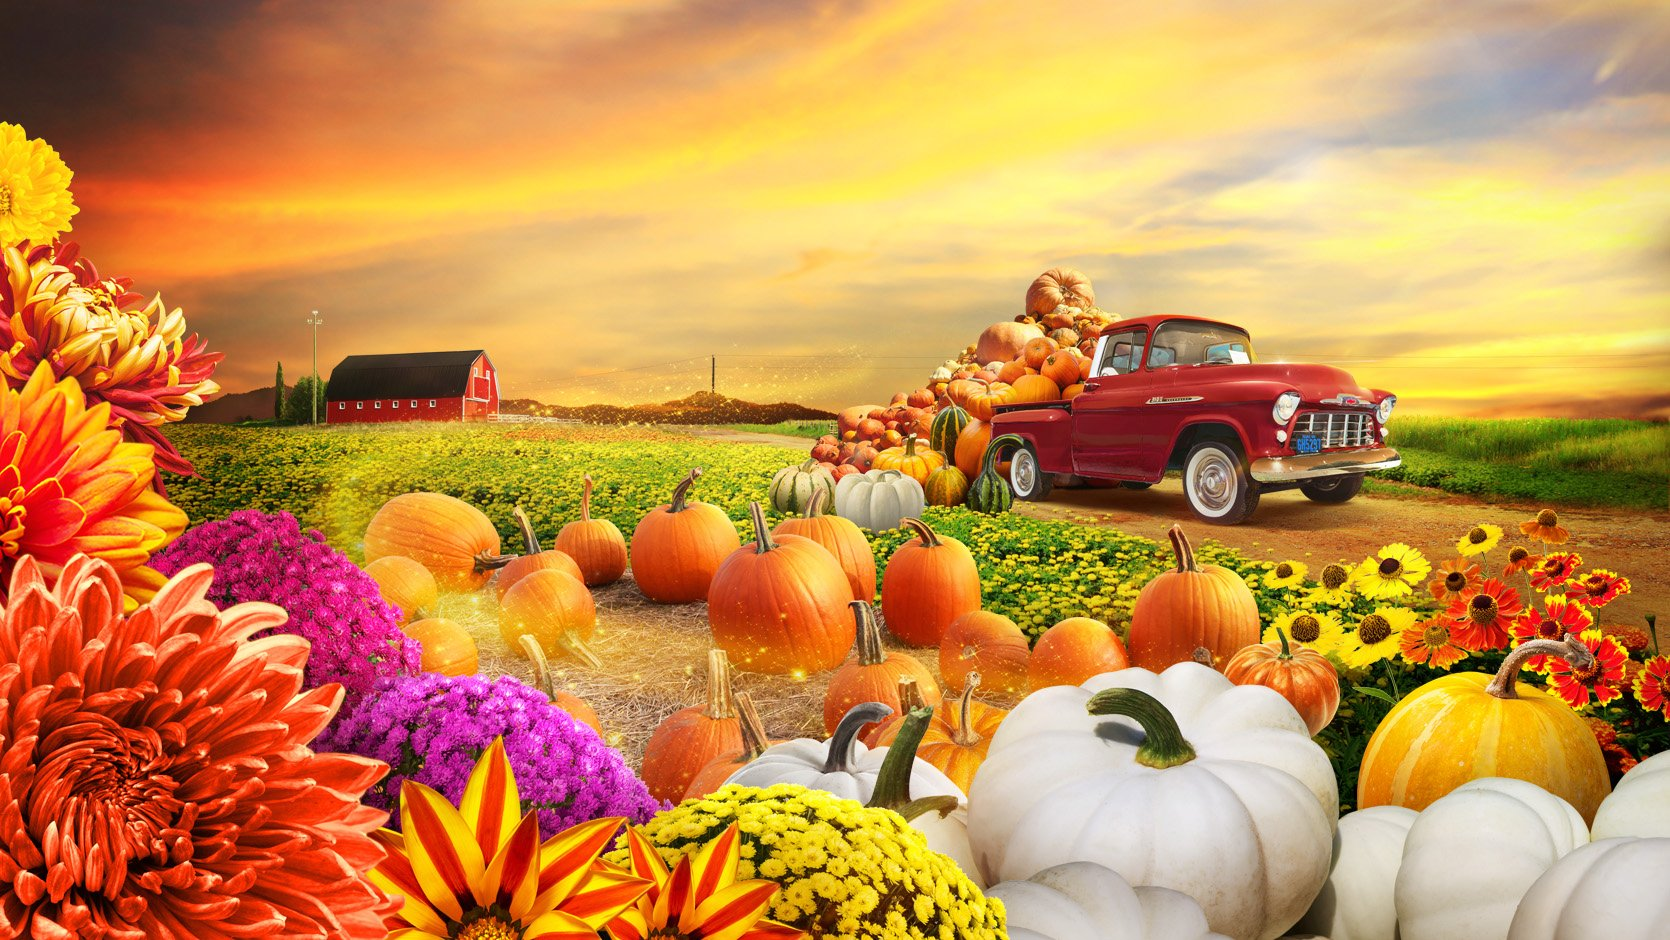 Autumn Harvest floral display.jpg